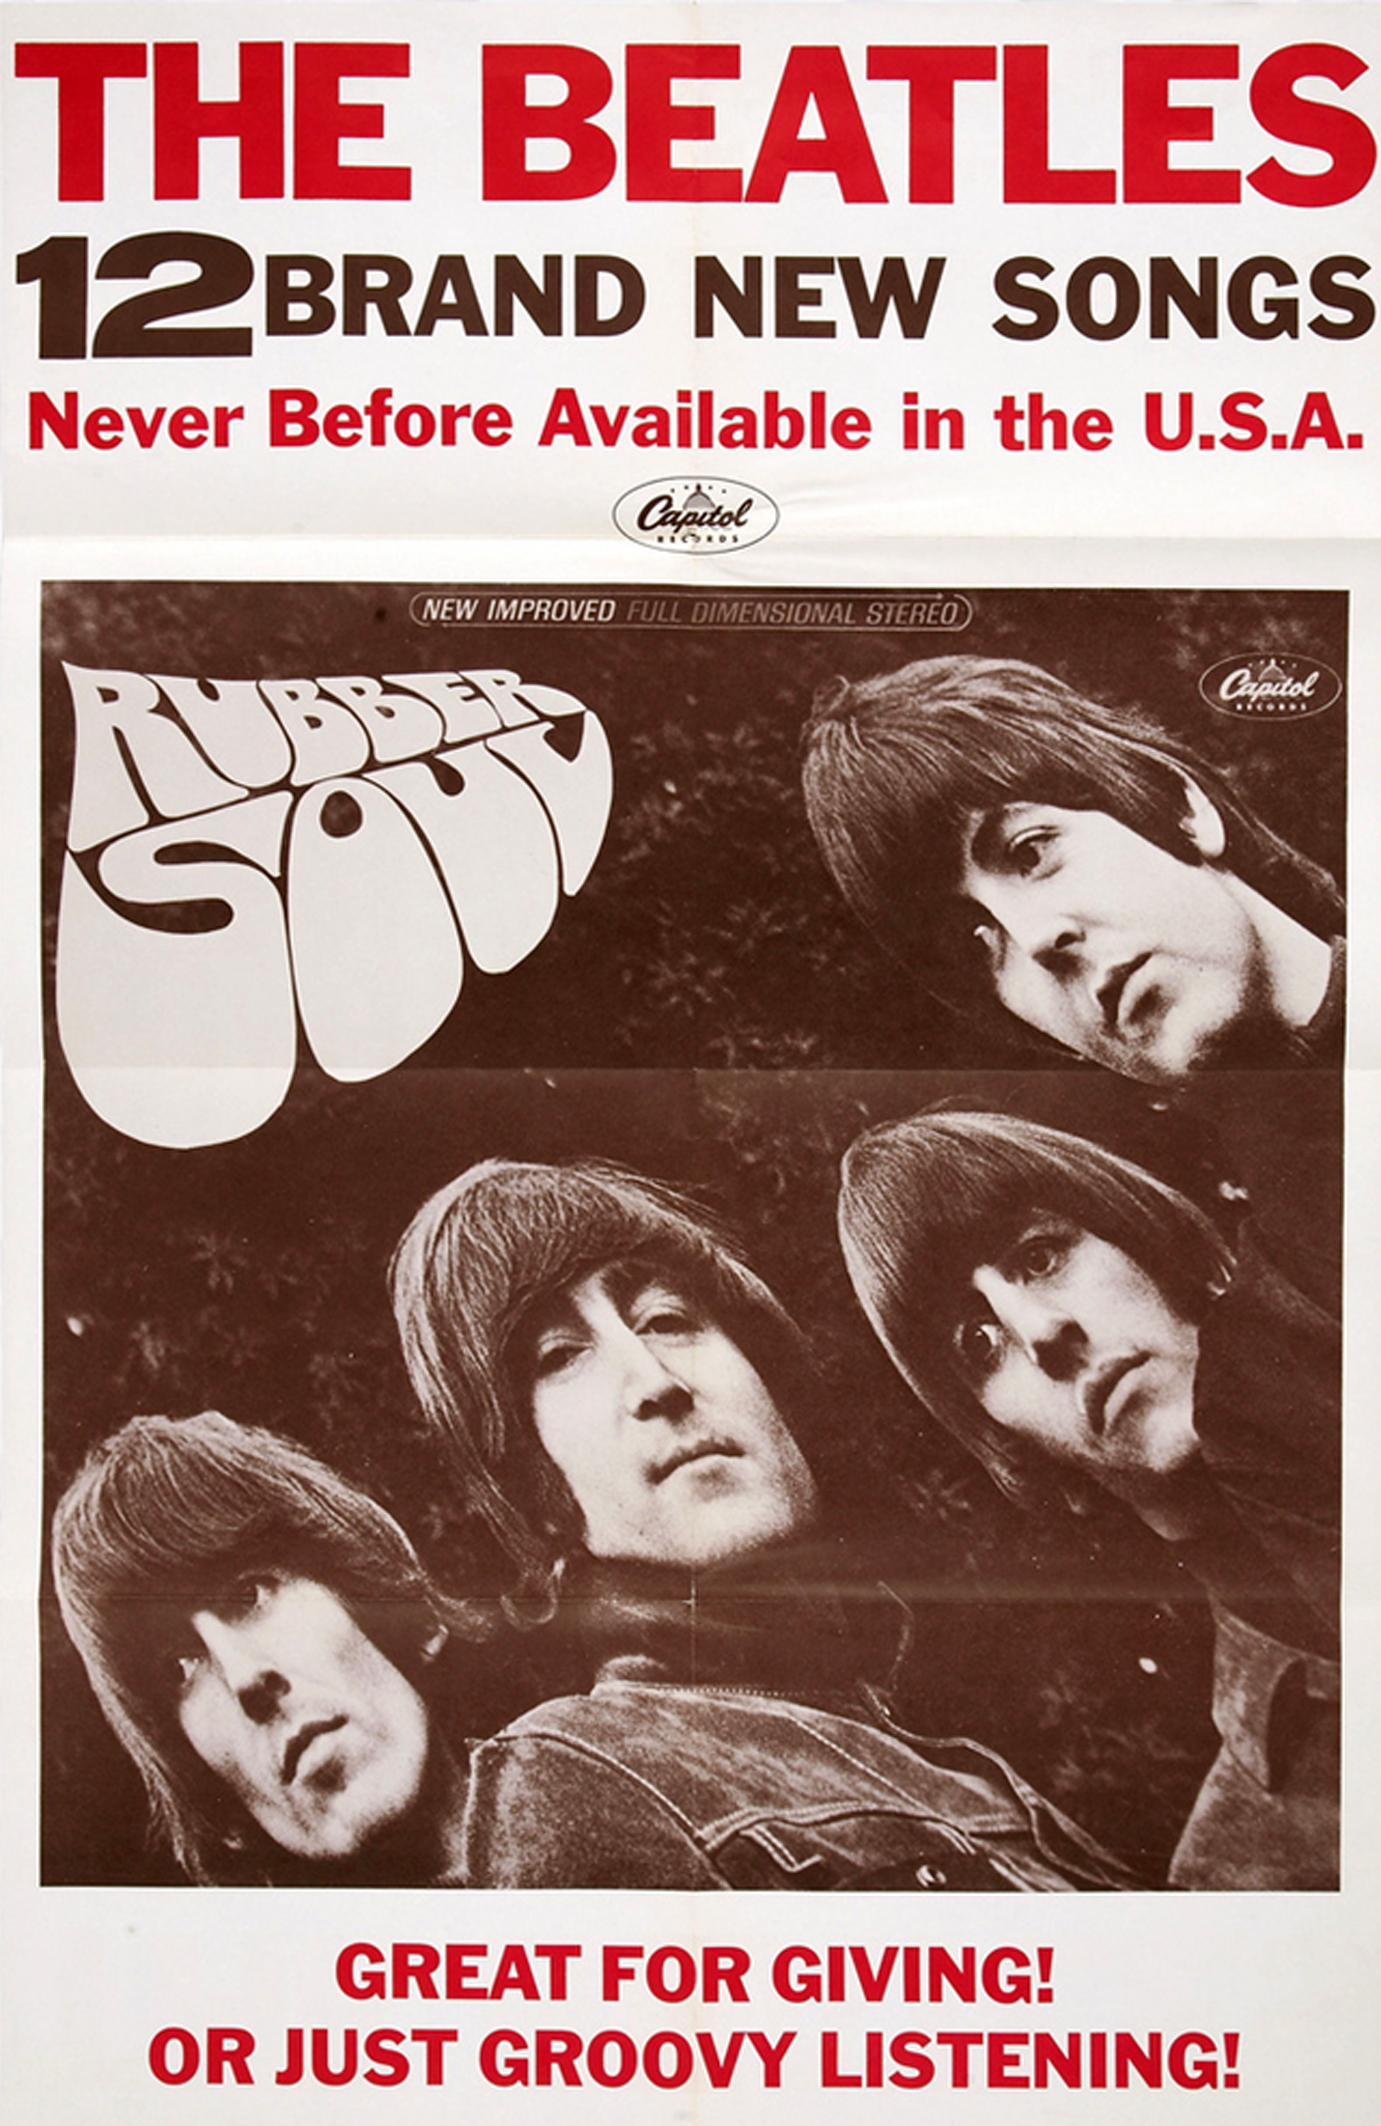 The Beatles Rubber Soul Promo Poster (Capitol, 1965)